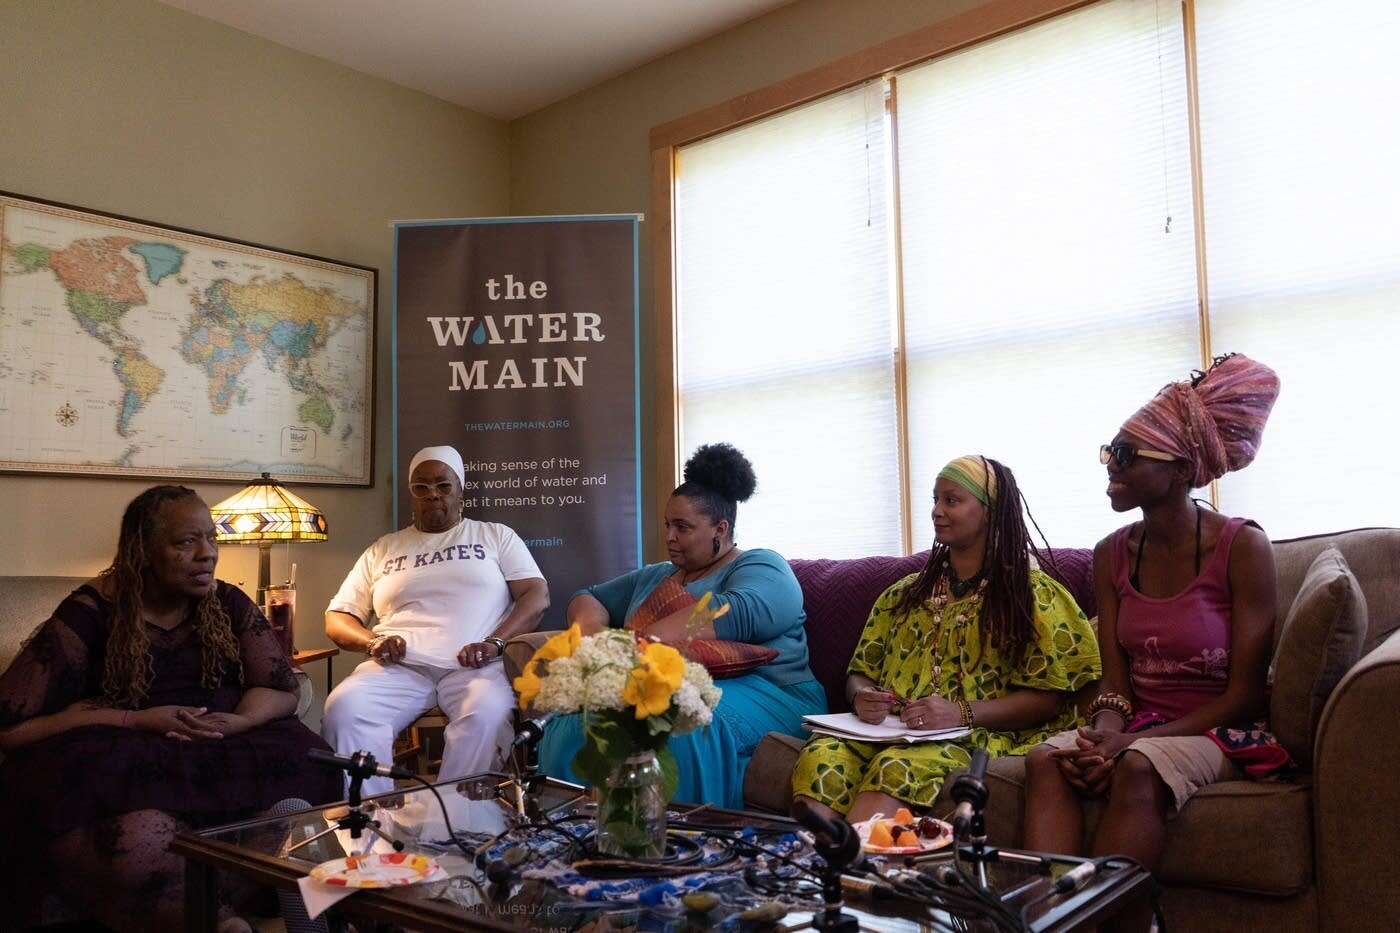 Amoke Kubat, left, and her Yo Mama peers discuss their connection to water through motherhood hosted by MPR Water Month at St. Jane's House in Minneapolis on July 11, 2019. From left: Kubat, Rosanna Audgins, Sarah Penn, Leslie Harris, and ShaVunda Brown.  Iyana Esters | The Water Main